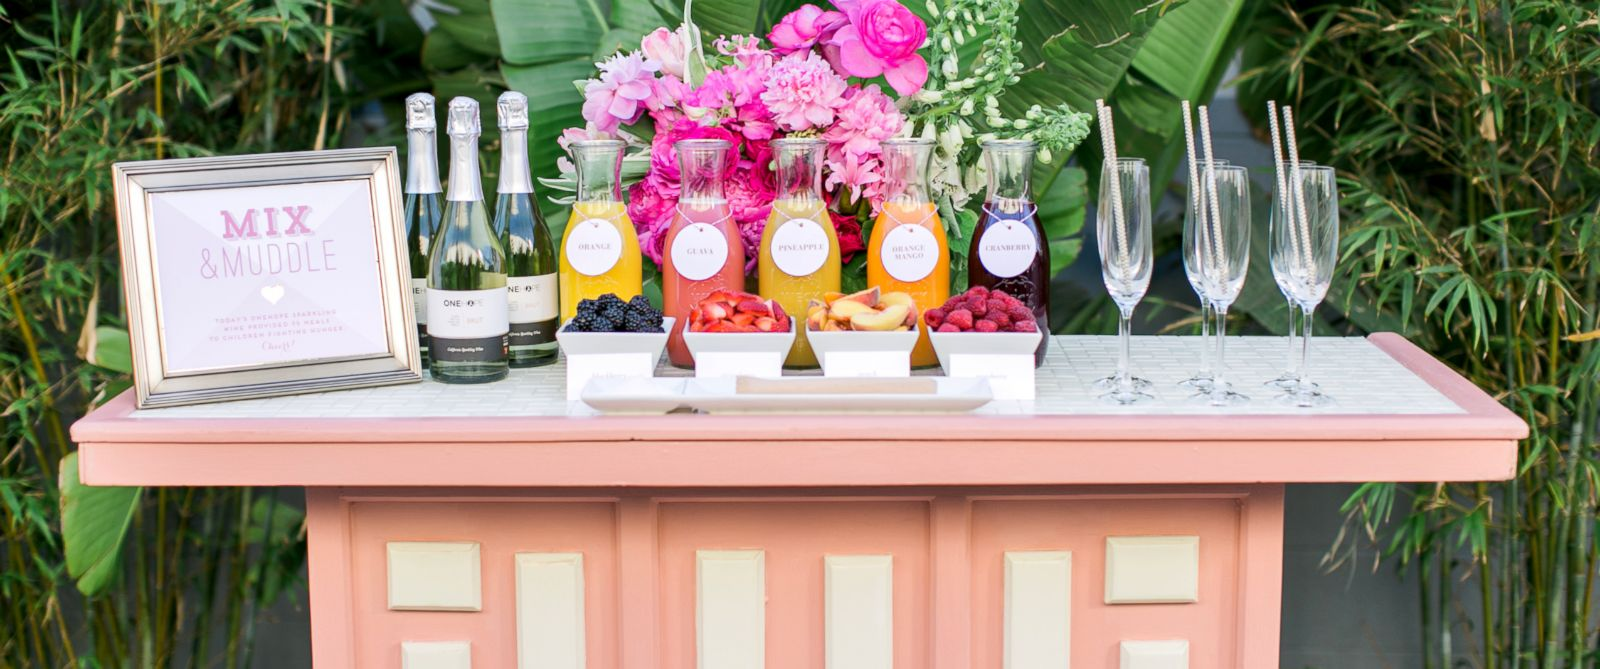 PHOTO: Hot on the heels of make-your-own pizza and sundae bars, some couples are looking to offer self-serve cocktail stations at their weddings this season.